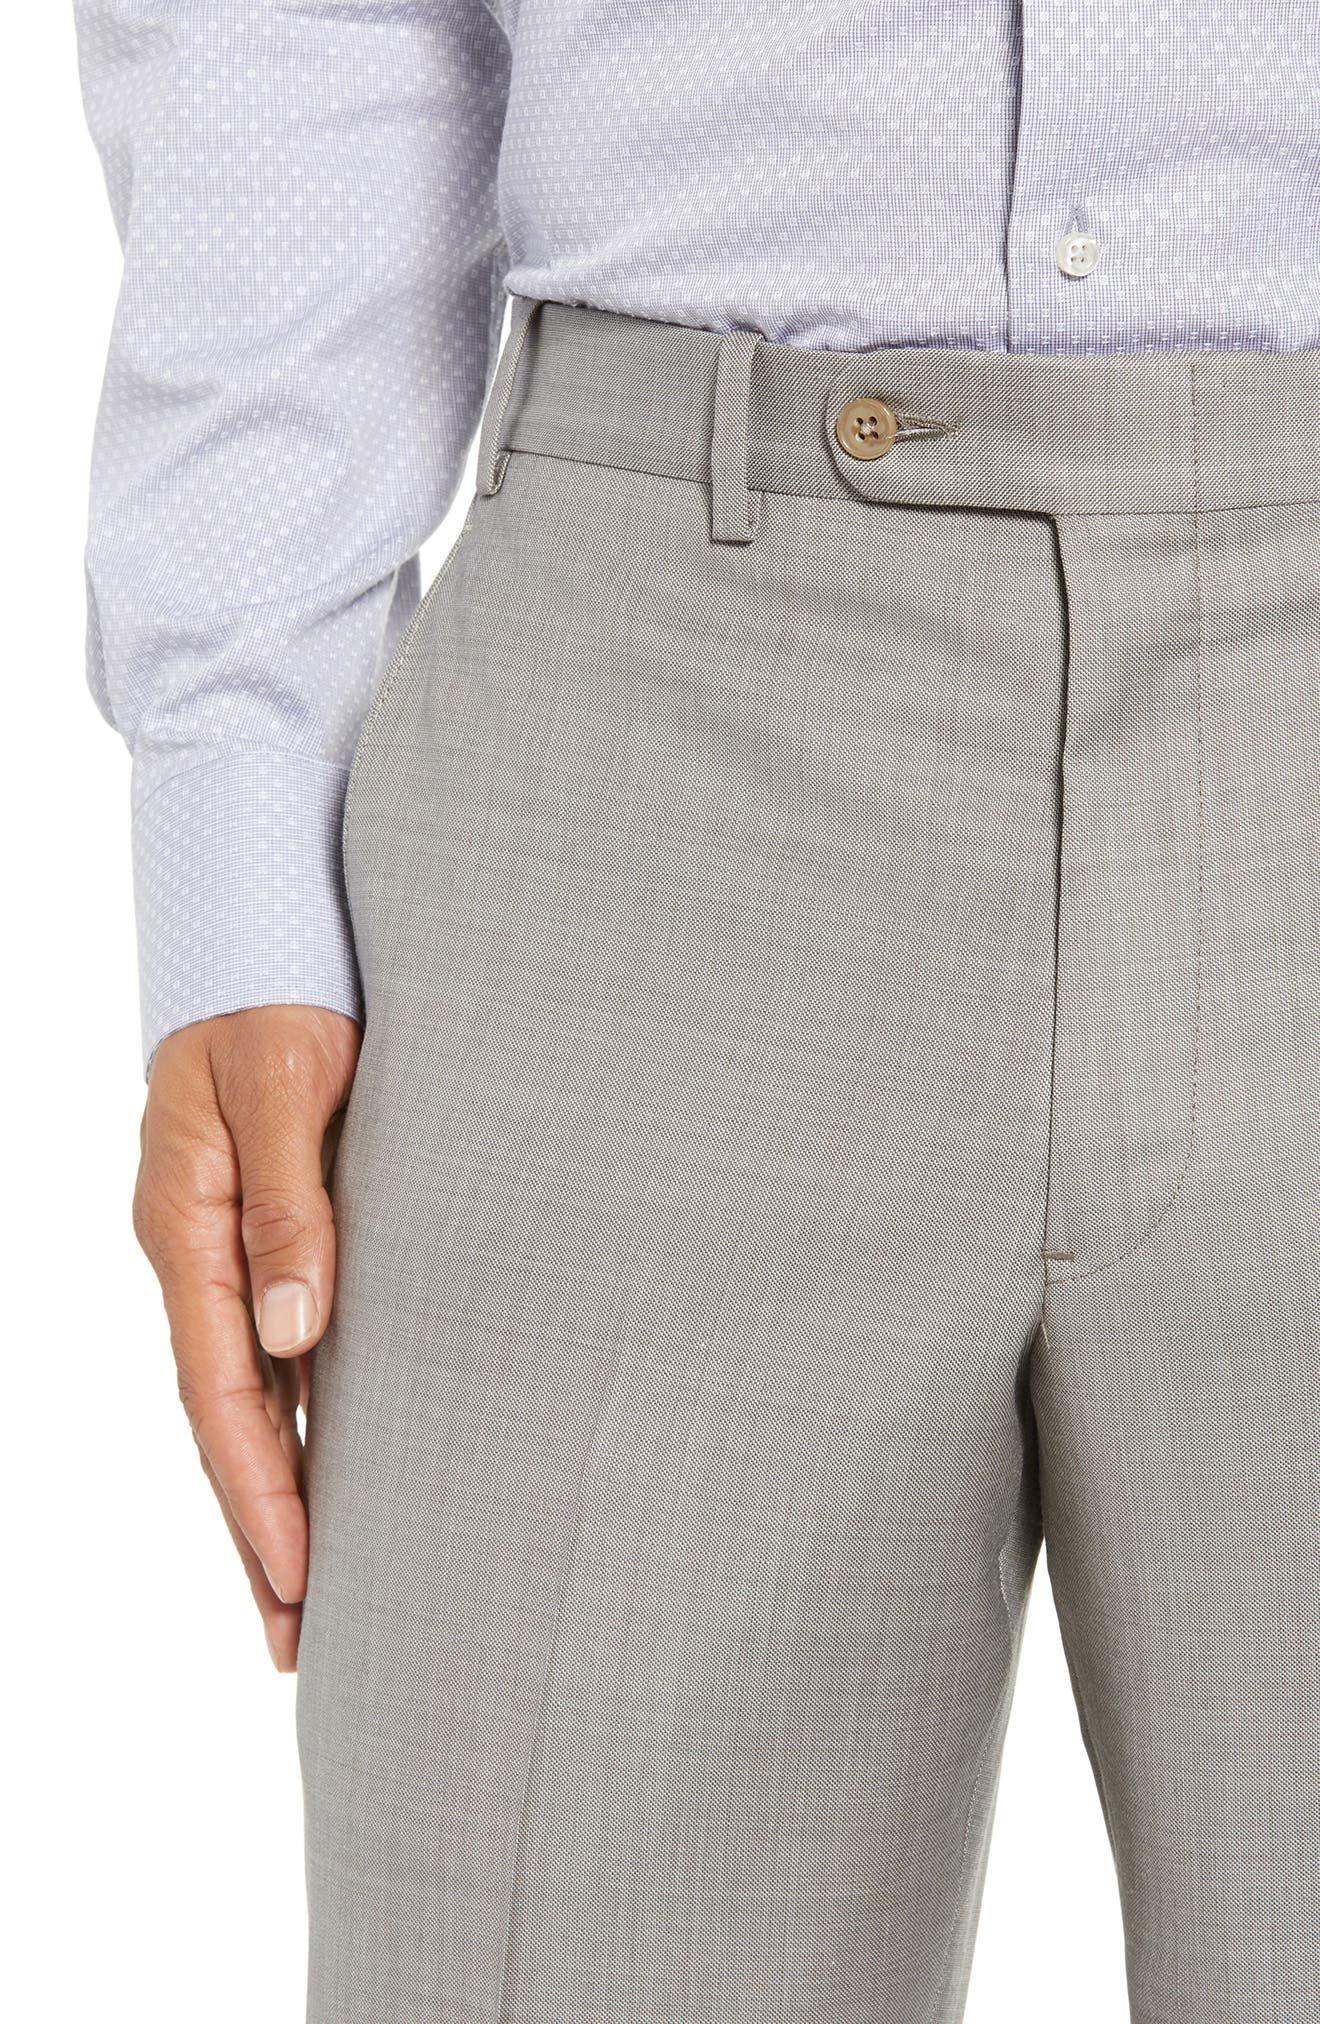 Torino Flat Front Solid Wool Trousers,                             Alternate thumbnail 12, color,